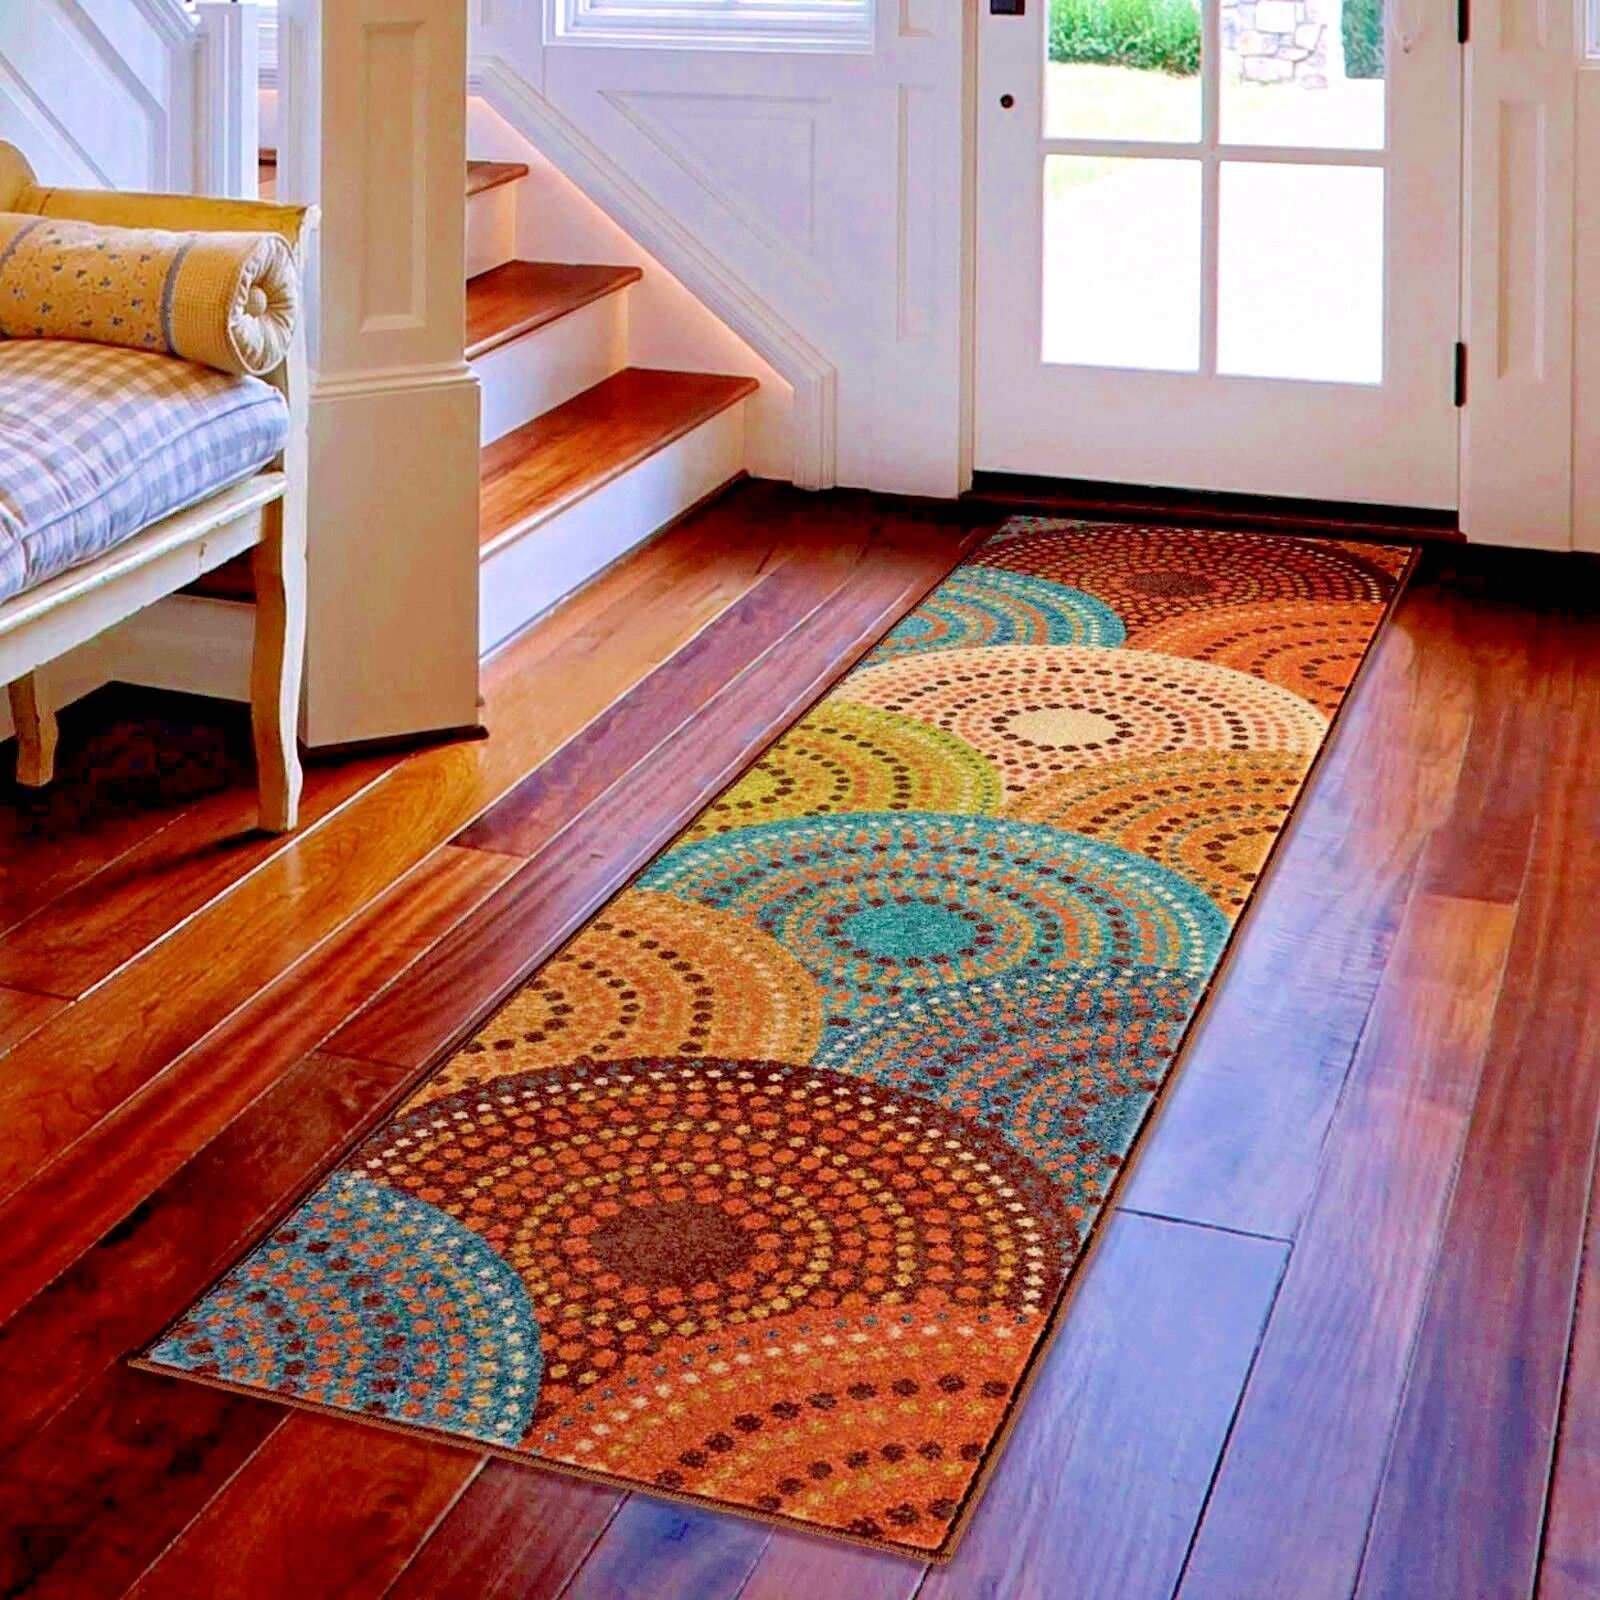 large kitchen rugs light area carpets 8x10 rug floor modern cute colorful